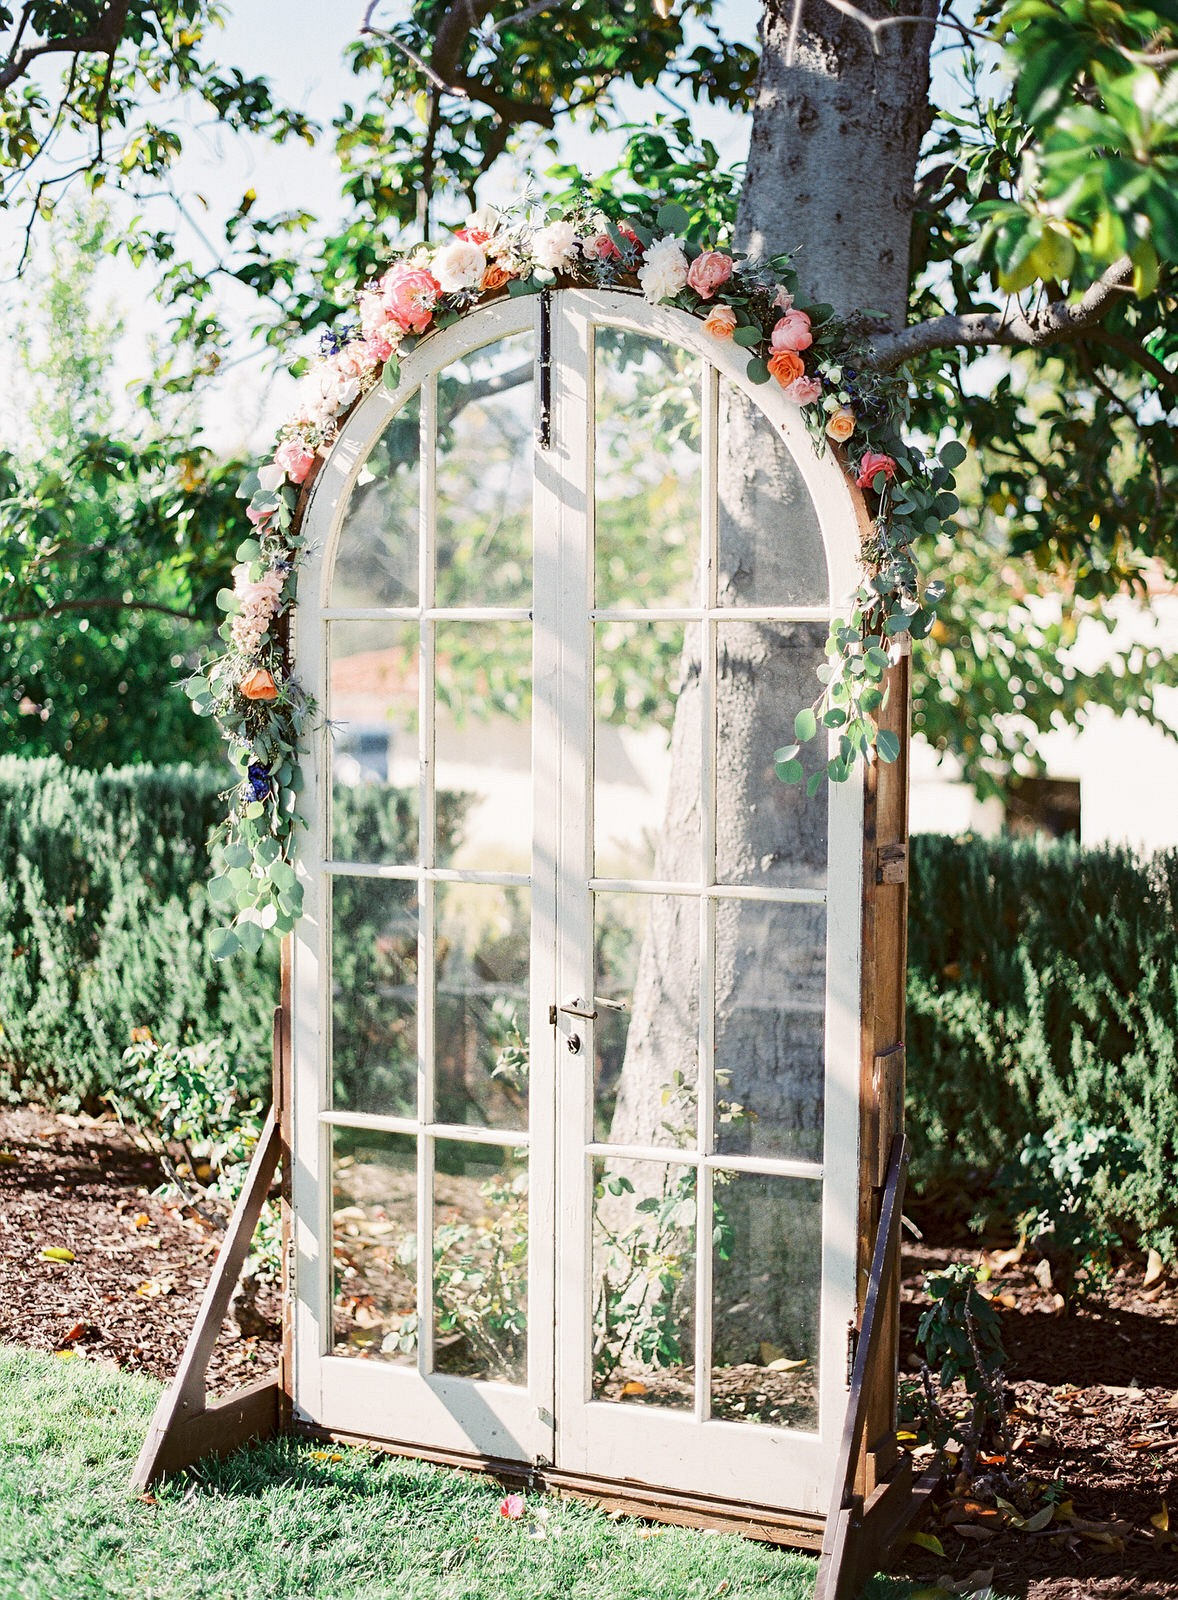 Anisa and Kyle's Summer Garden Wedding